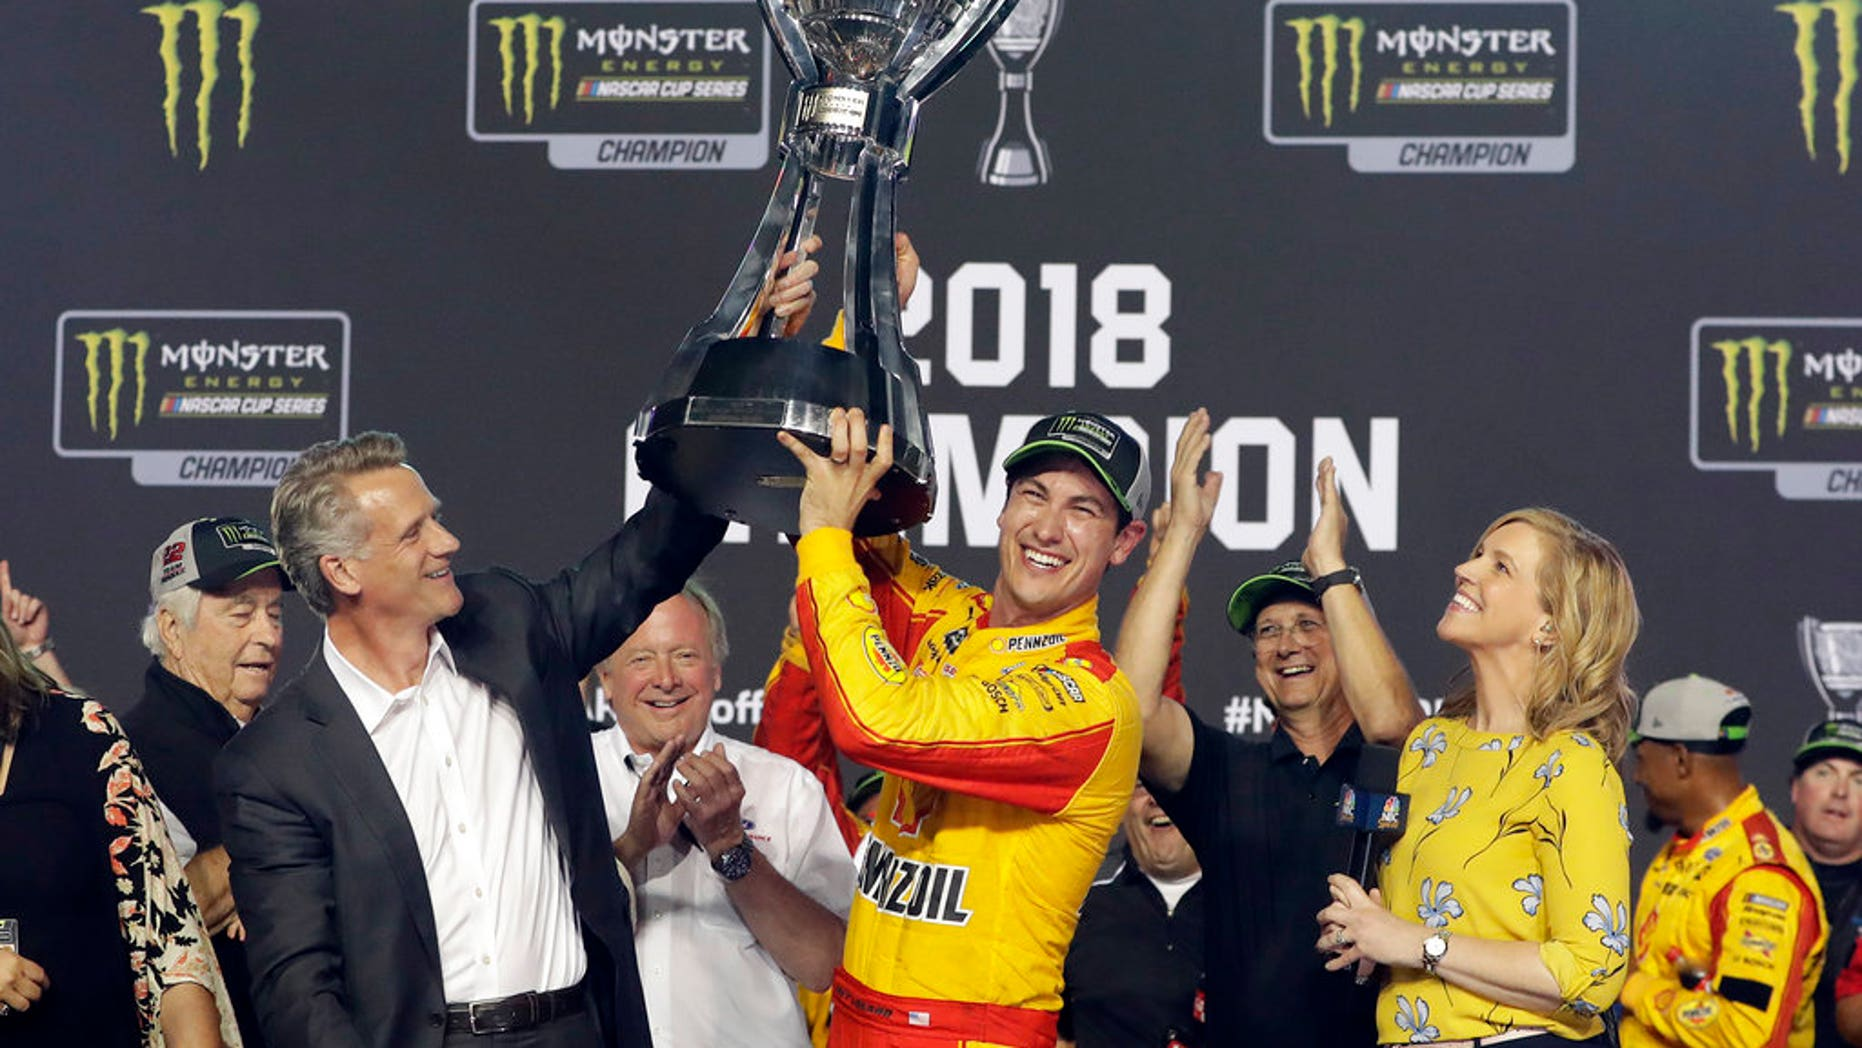 Joey Logano holds the trophy after winning the NASCAR Cup Series Championship auto race at the Homestead-Miami Speedway, Sunday, Nov. 18, 2018, in Homestead, Florida.